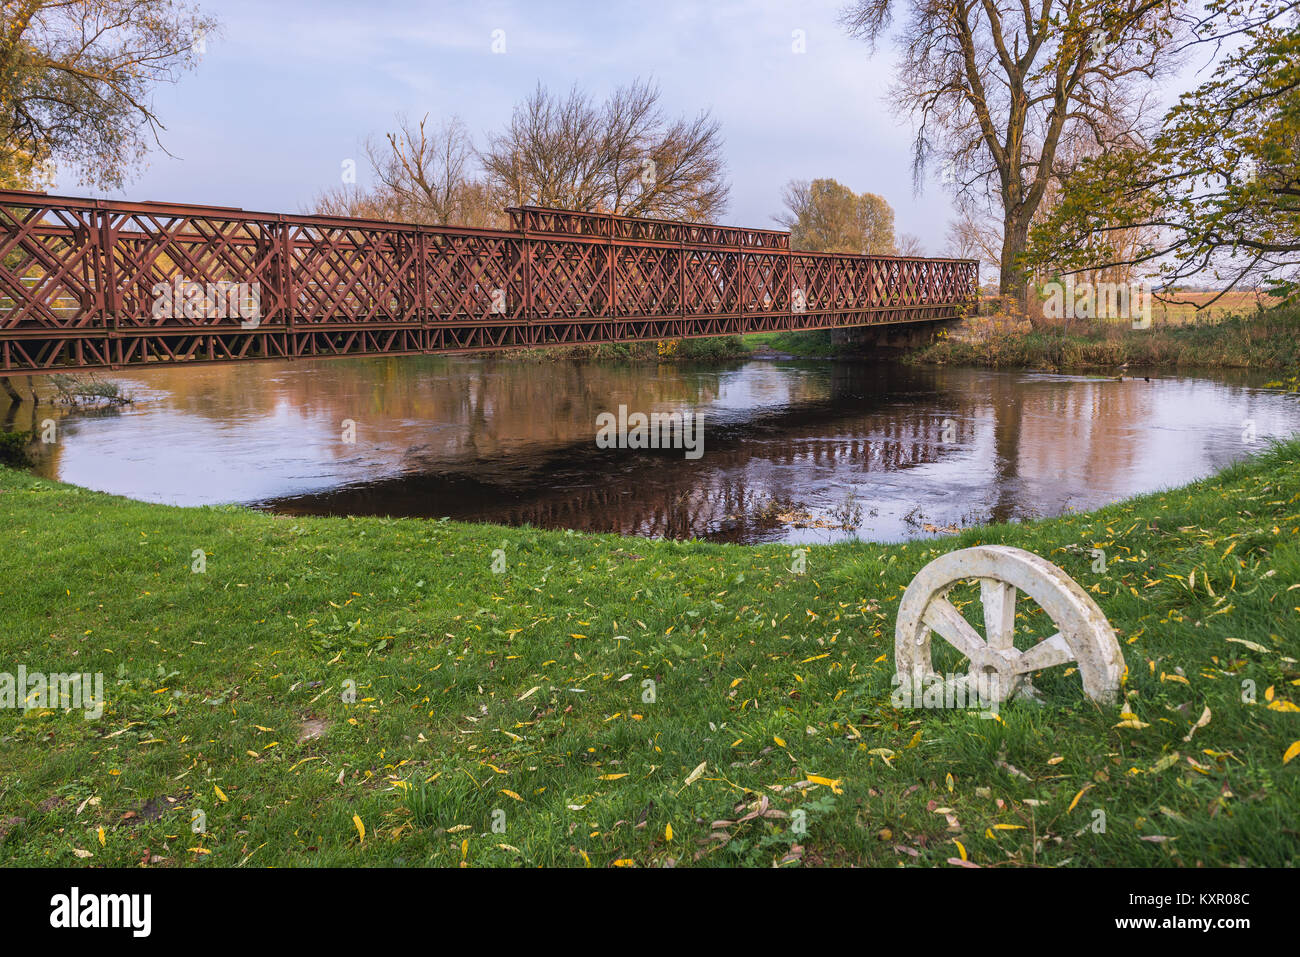 Memorial site of Battle of the Bzura River in Witkowice village, Sochaczew County in Masovian Voivodeship of Poland - Stock Image